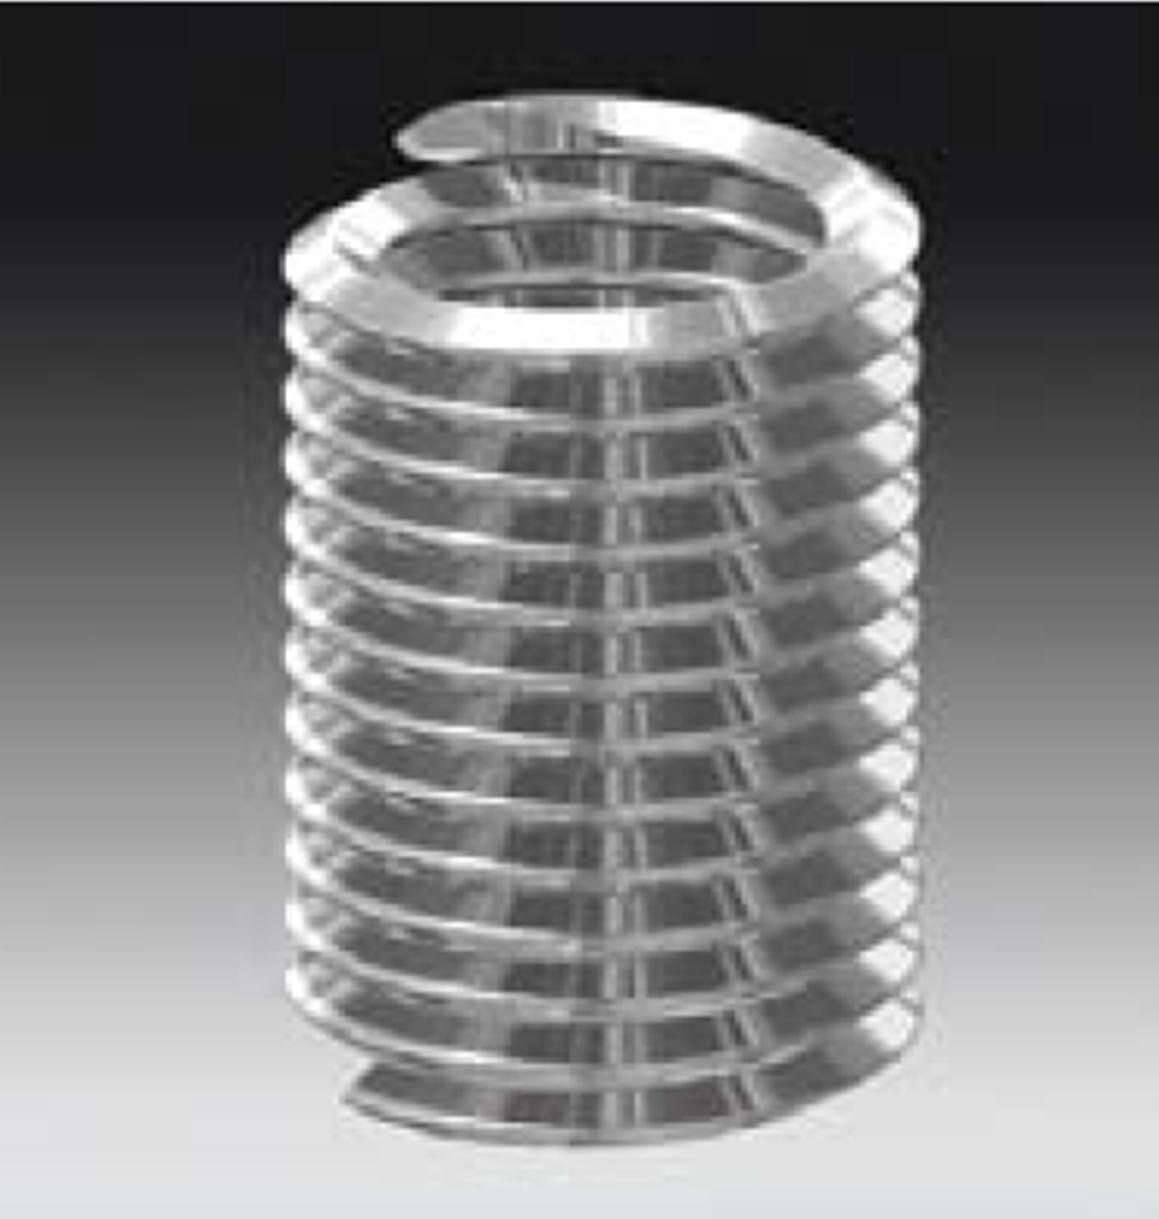 03523SF, Tanged Free Running Helical Insert, Unified [2-56] 1.5D, UNC, SST, Plain Finish [.129] 3.28mm Length (1000 PK)